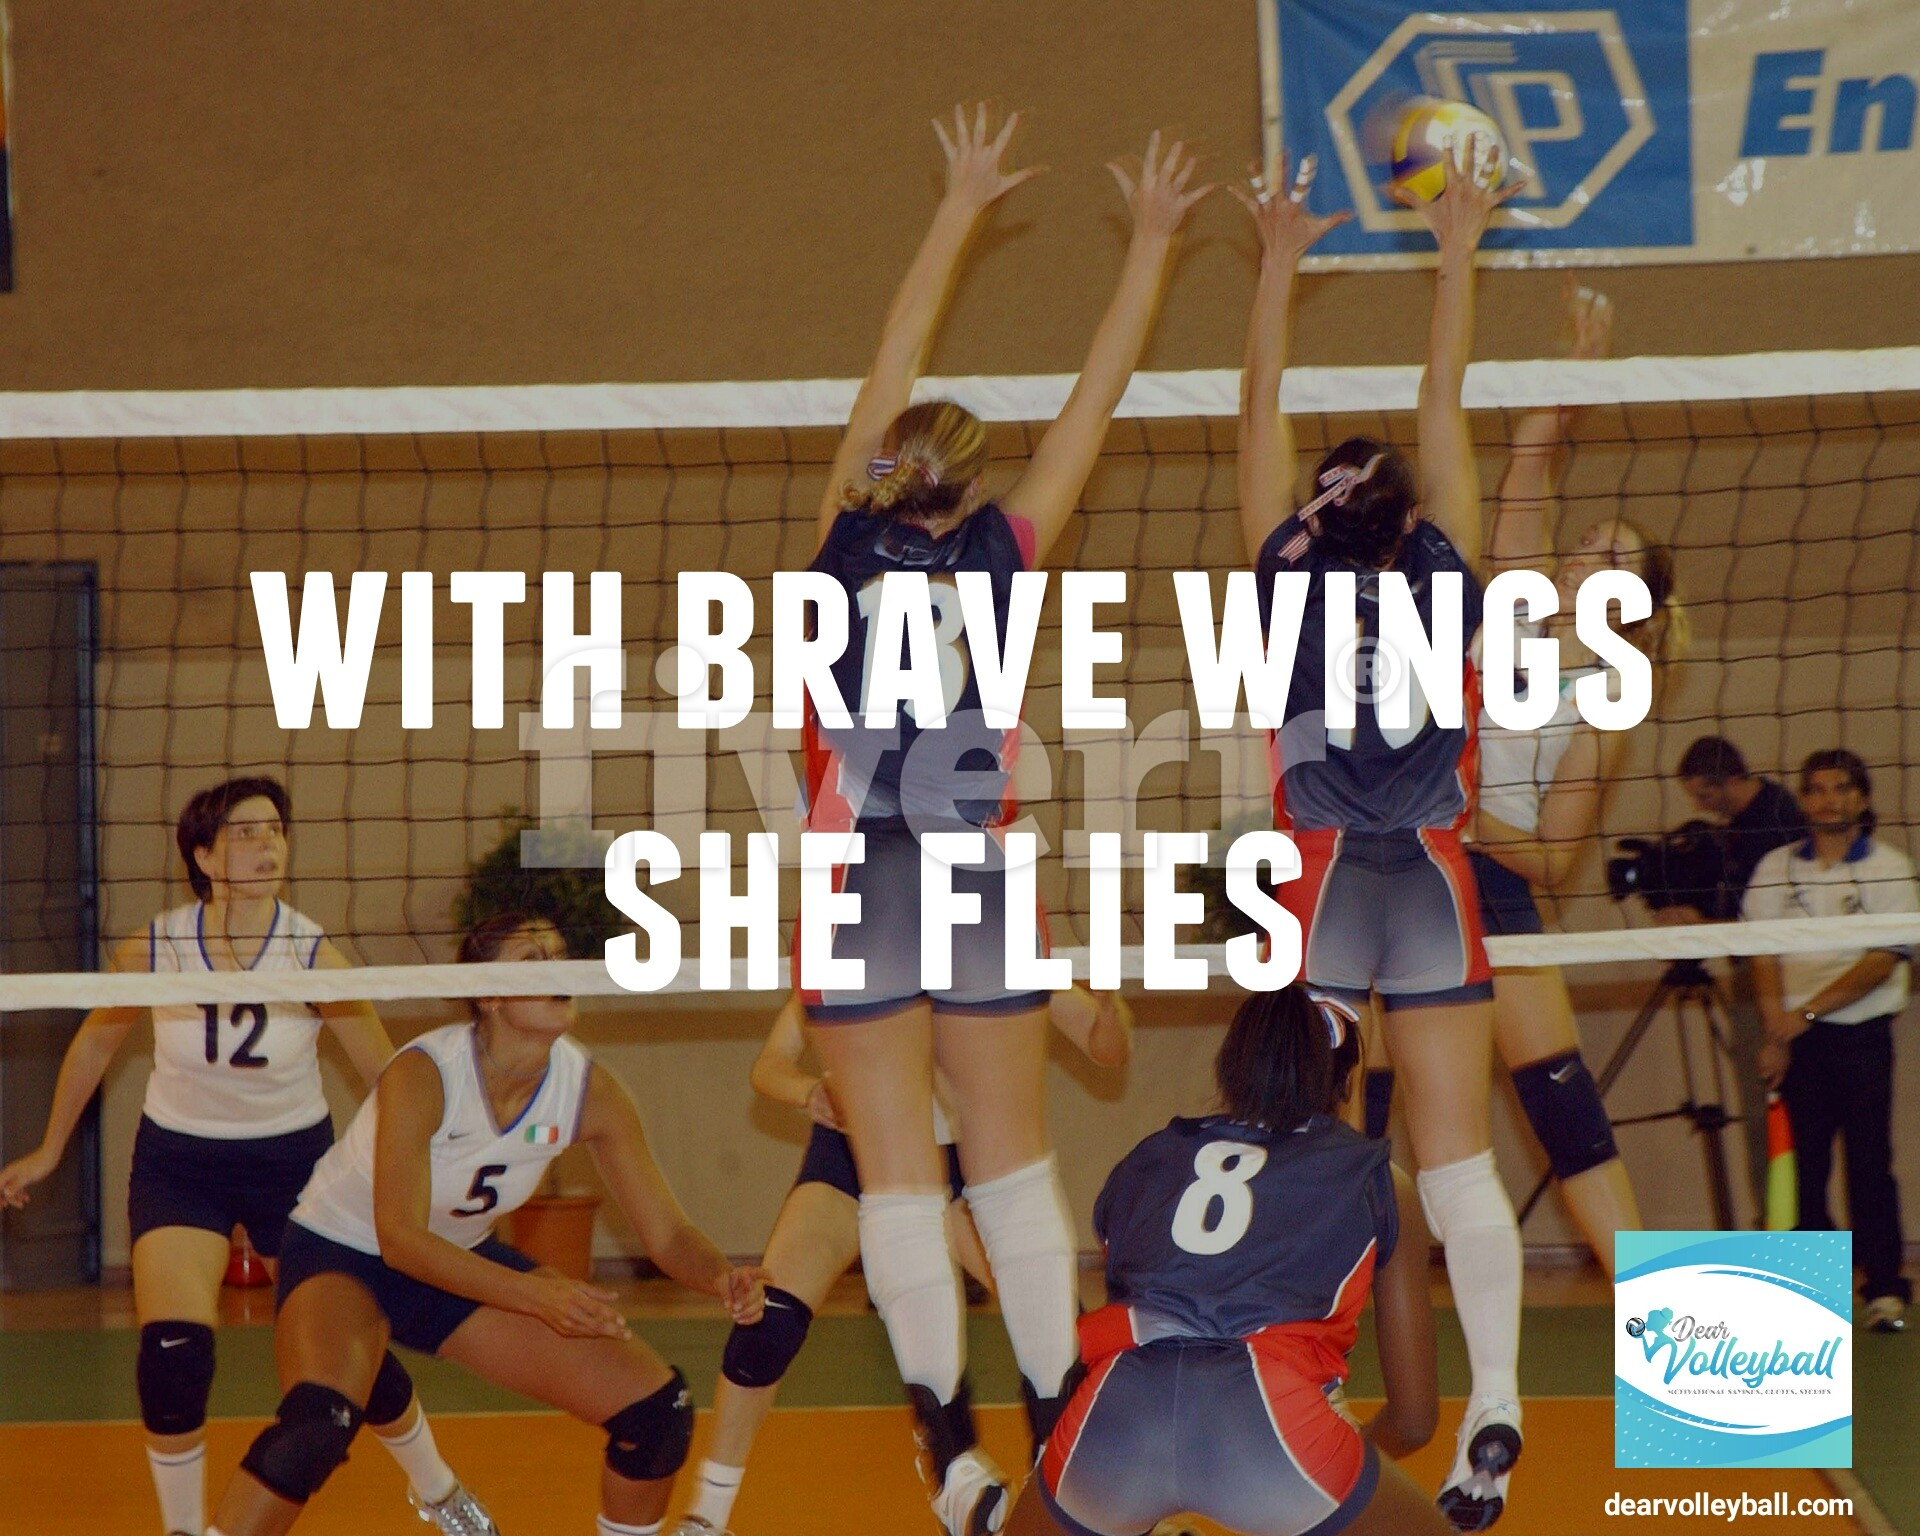 With brave wings she flies and 54 short inspirational quotes on DearVolleyball.com